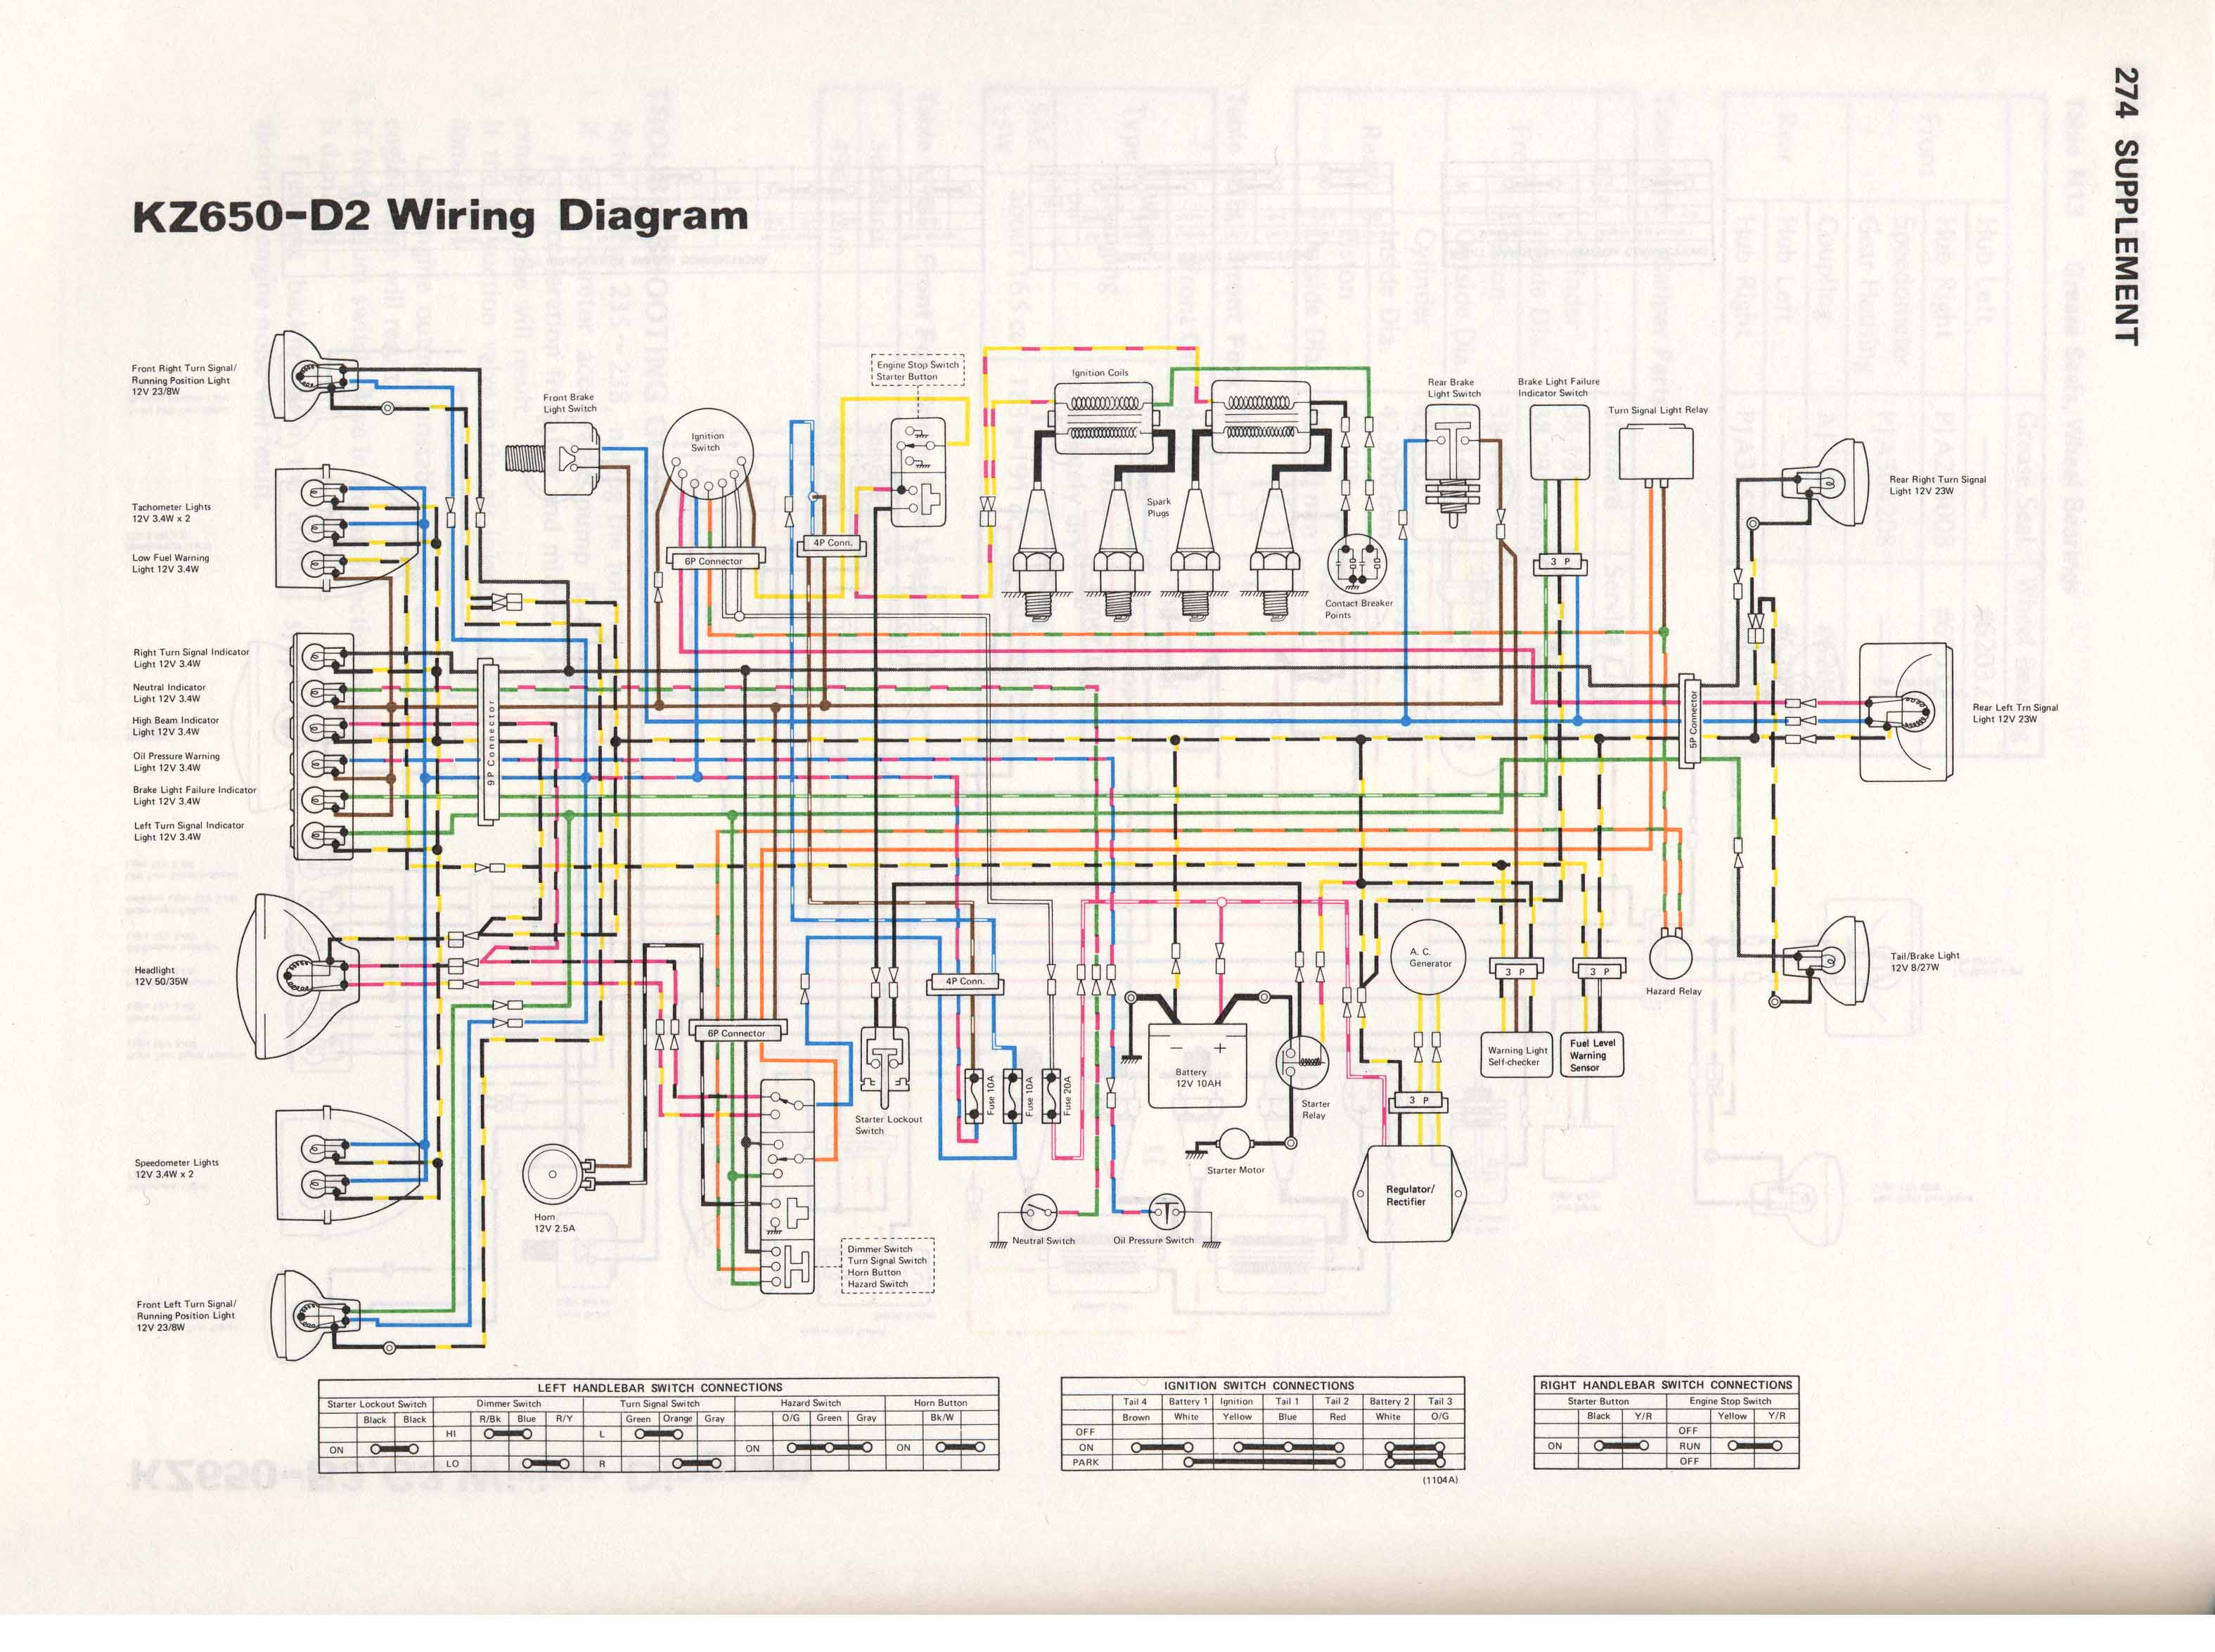 KZ650 D2 kawasaki ltd 550 wiring diagram wiring diagram simonand 1980 kz650 wiring diagram at readyjetset.co